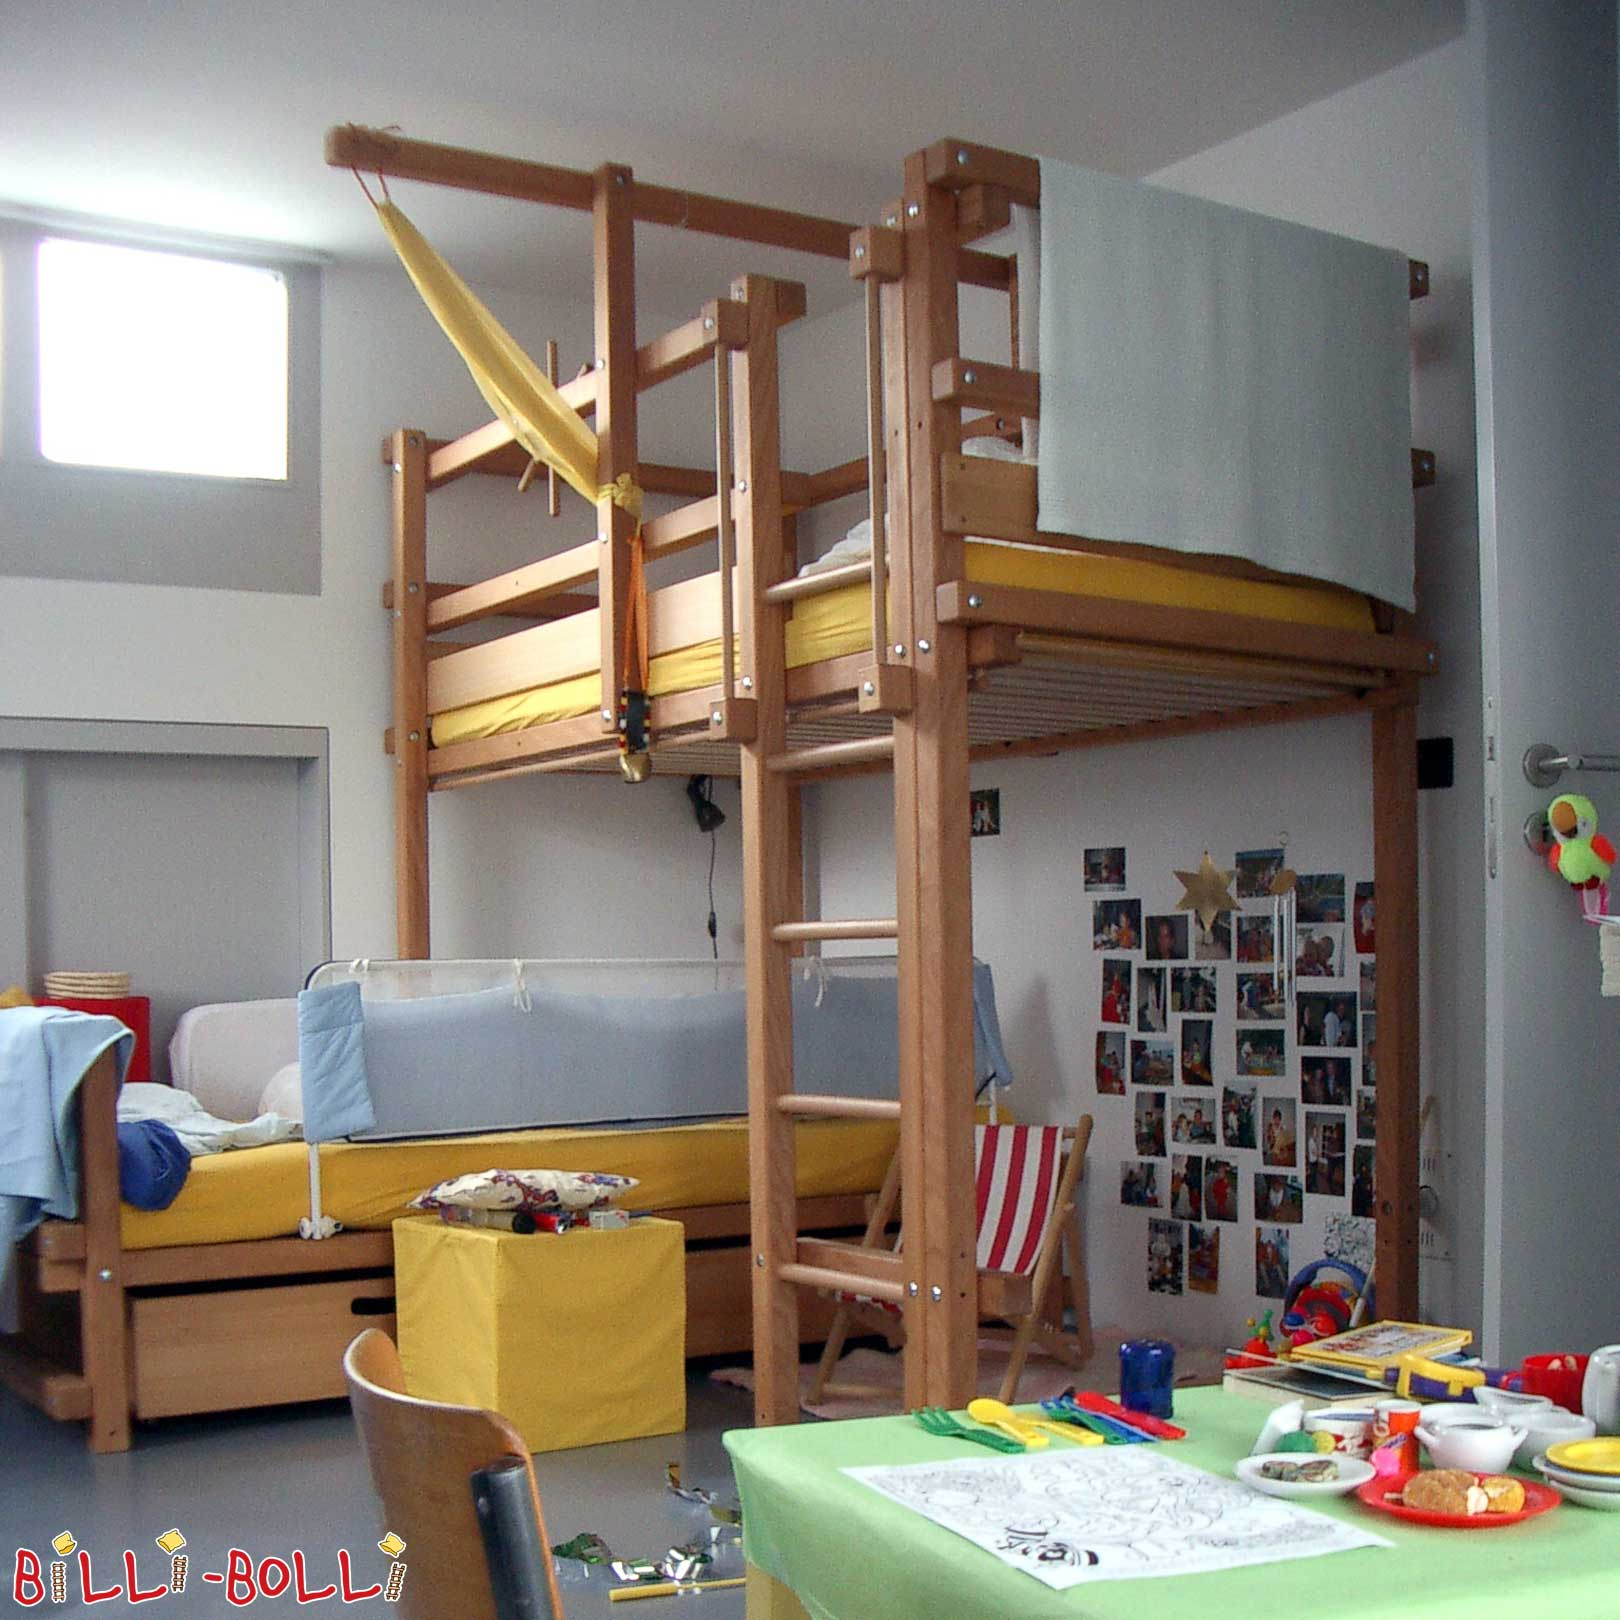 billi bolli billi bolli children playing in a billibolli. Black Bedroom Furniture Sets. Home Design Ideas